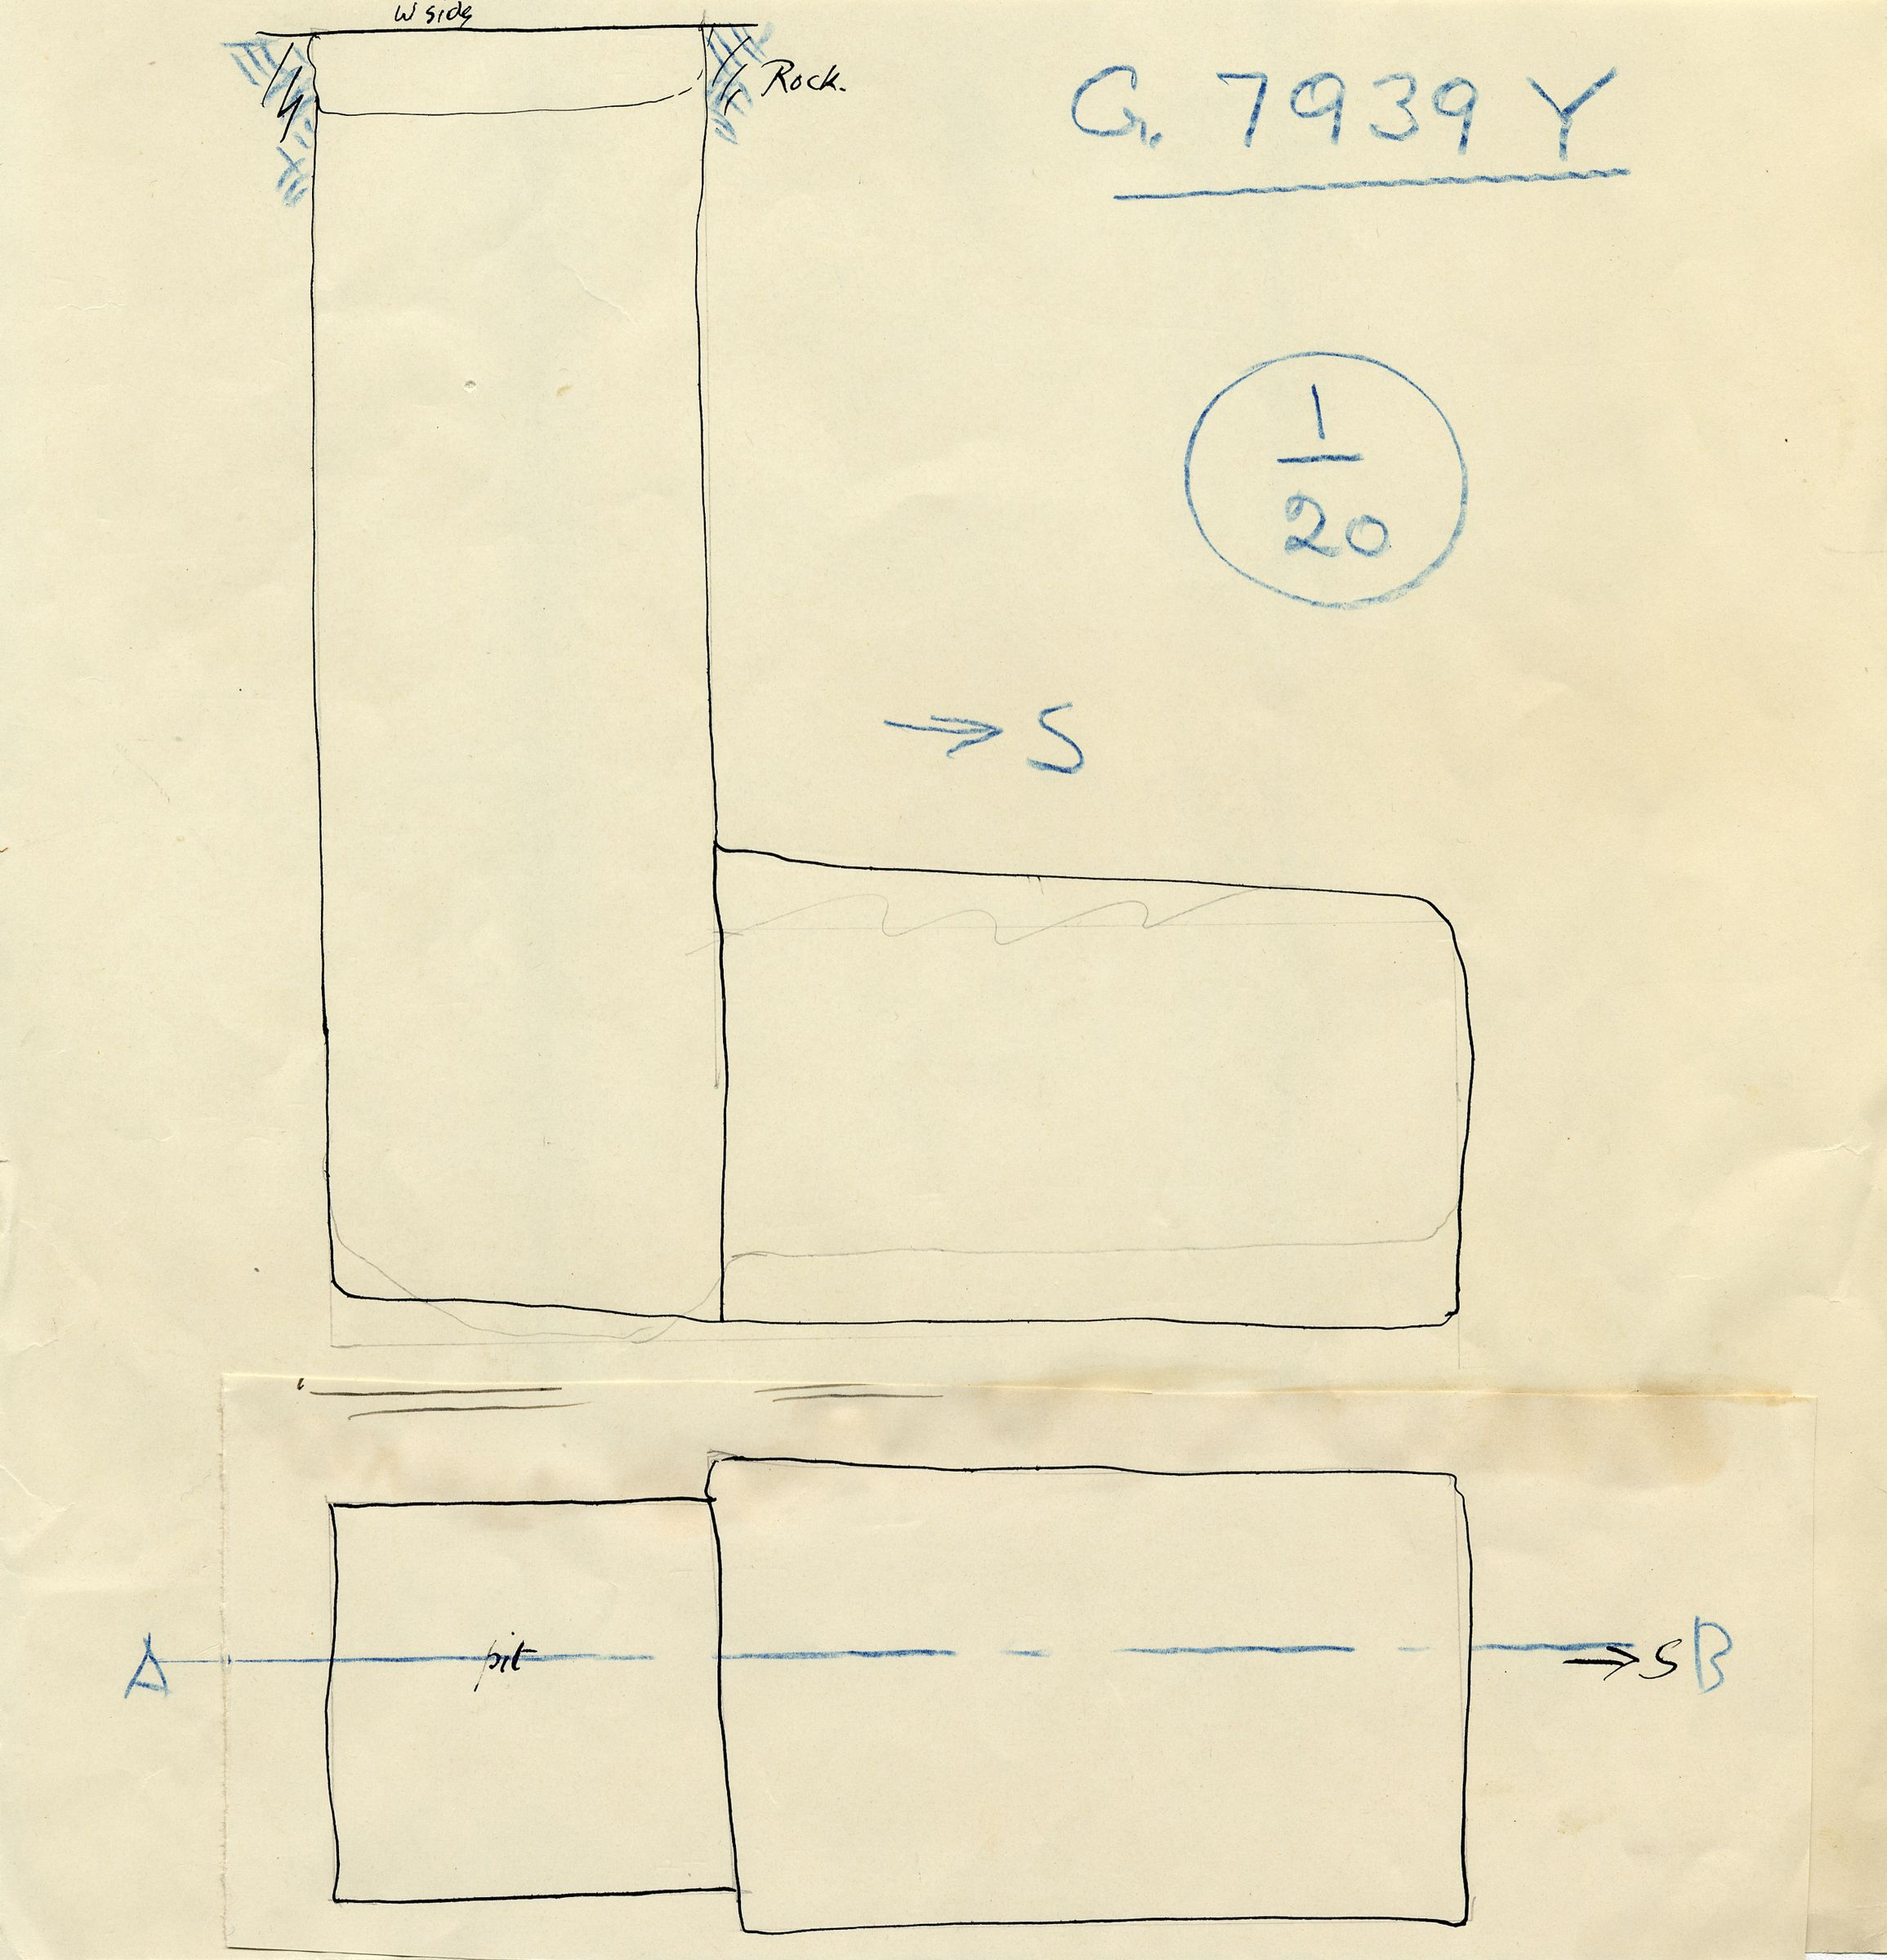 Maps and plans: G 7939, Shaft Y